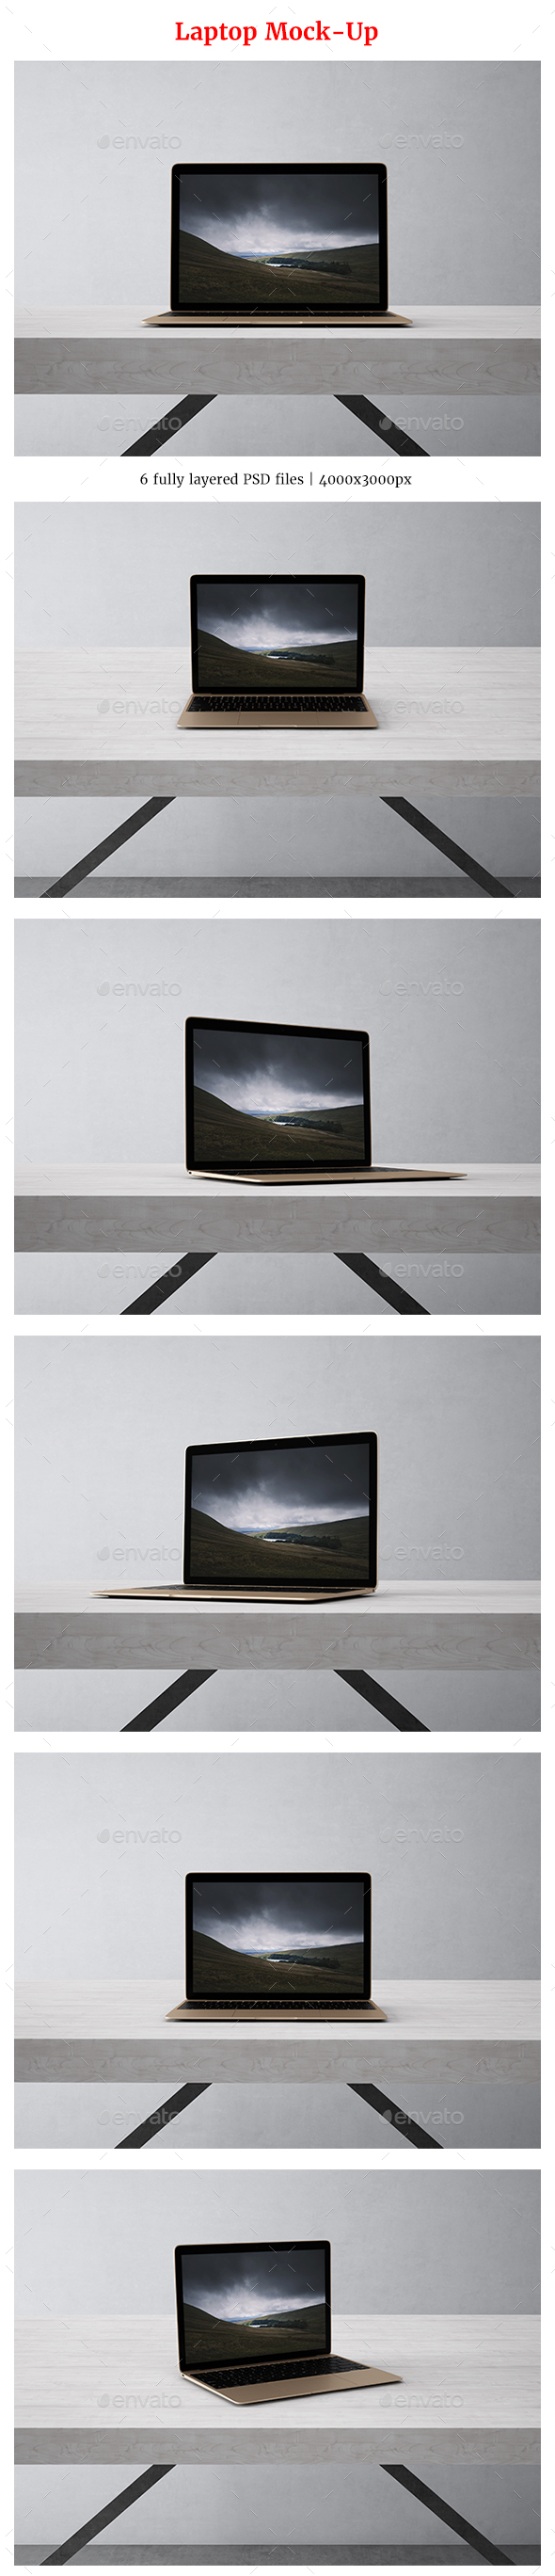 Laptop Mock-Up - Laptop Displays